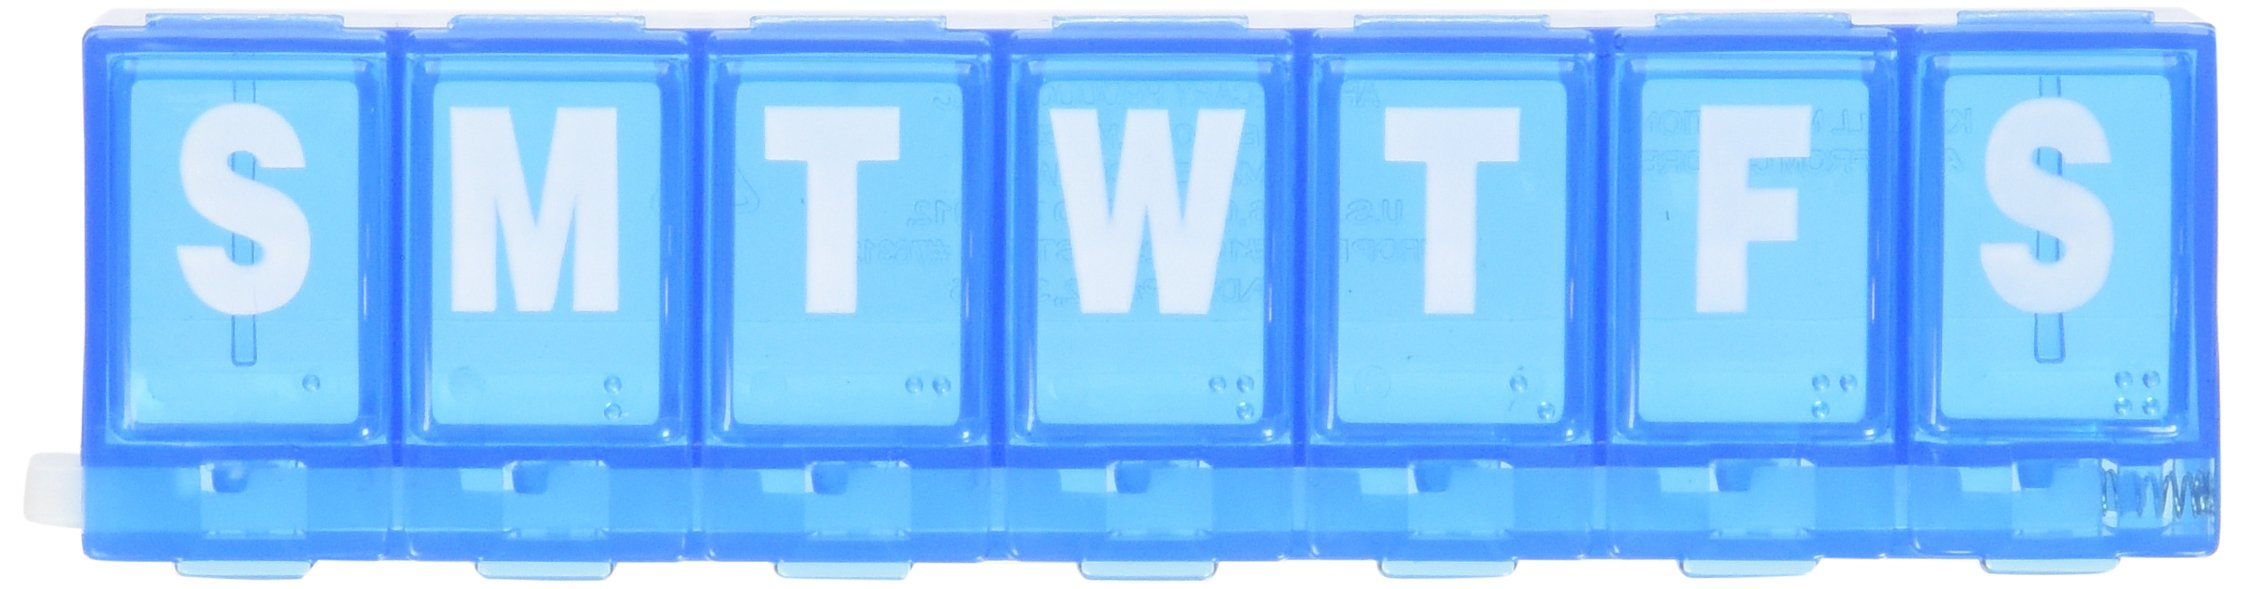 Ezy Dose 7 Day Locking Pill Reminder Small (4.75 x 1.25 x 0.75 inches) (Pack of 3)